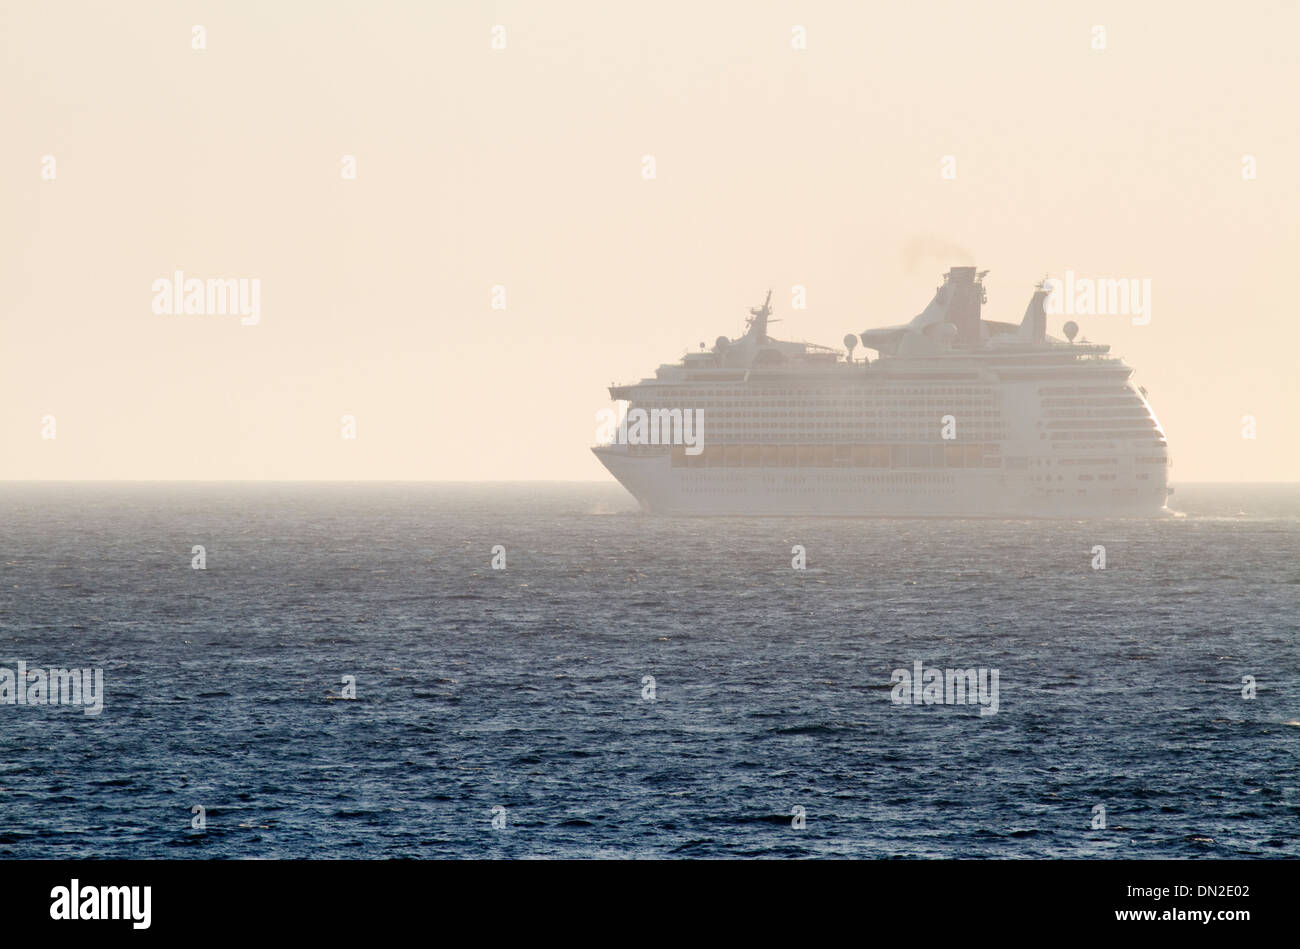 Cruise ship from Royal Caribbean. - Stock Image